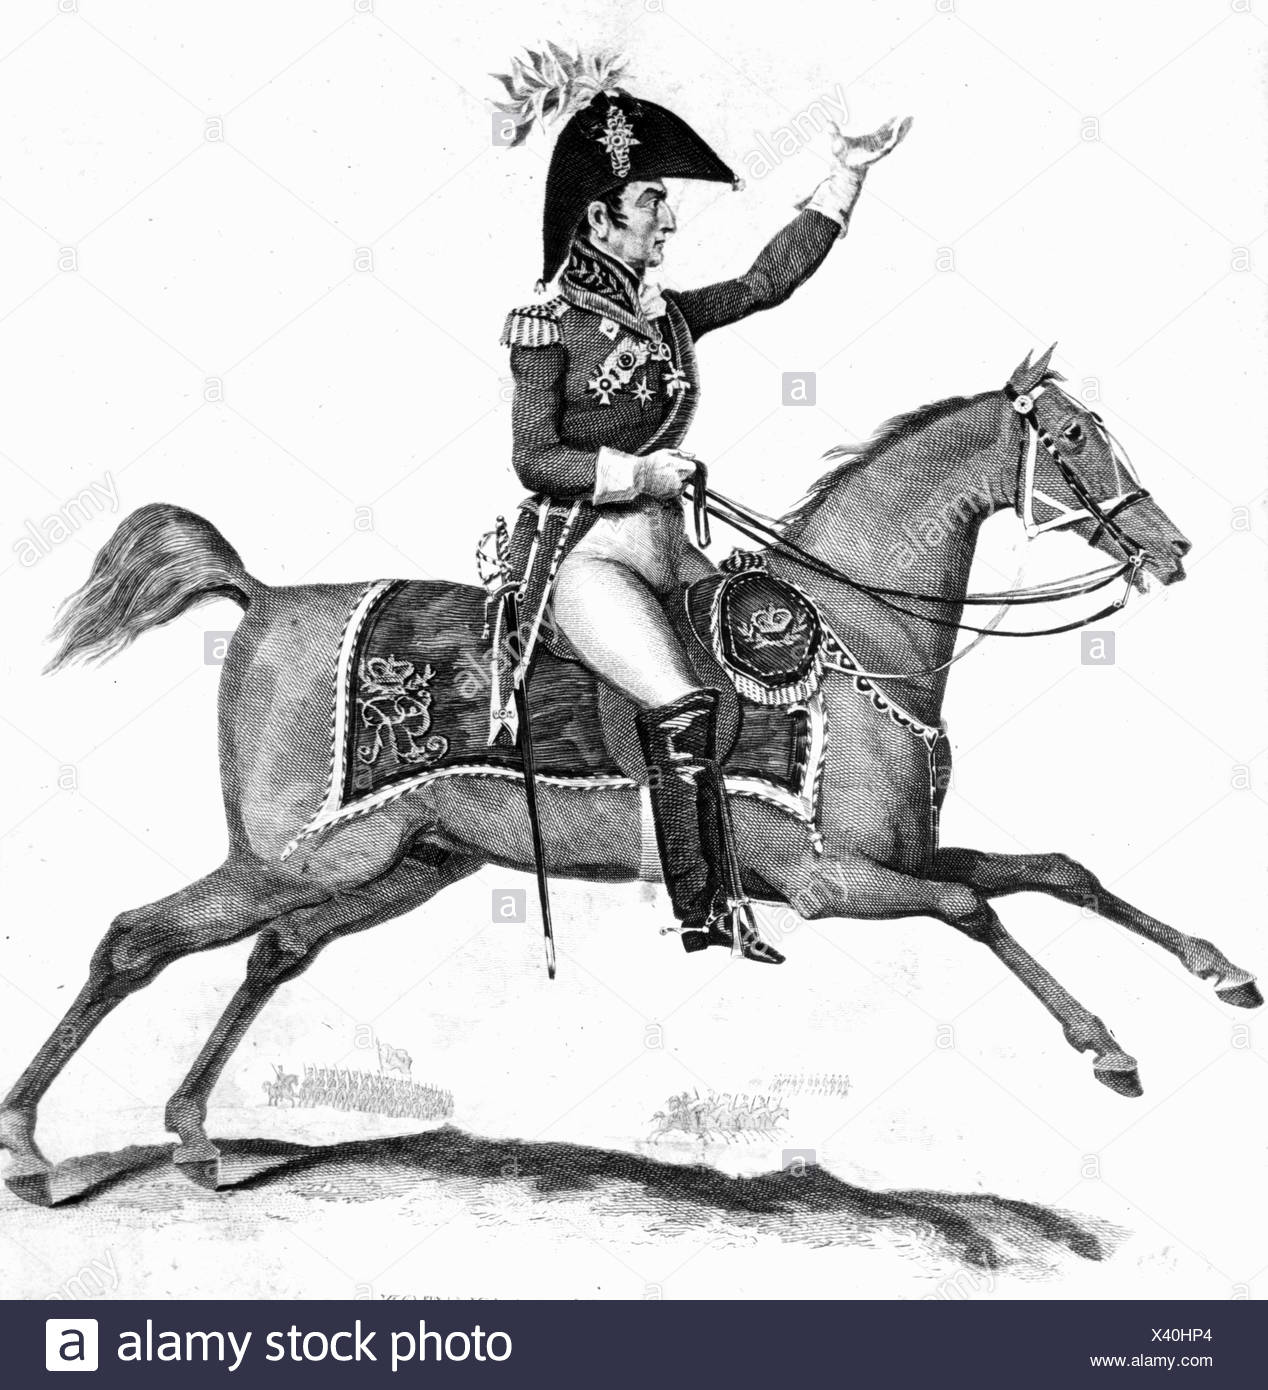 Wellington, Arthur Wellesley Duke of, 1.5.1769 - 14.9.1852, British General and politician, equestrian half length, steel engraving, 19th century,  , Artist's Copyright has not to be cleared - Stock Image